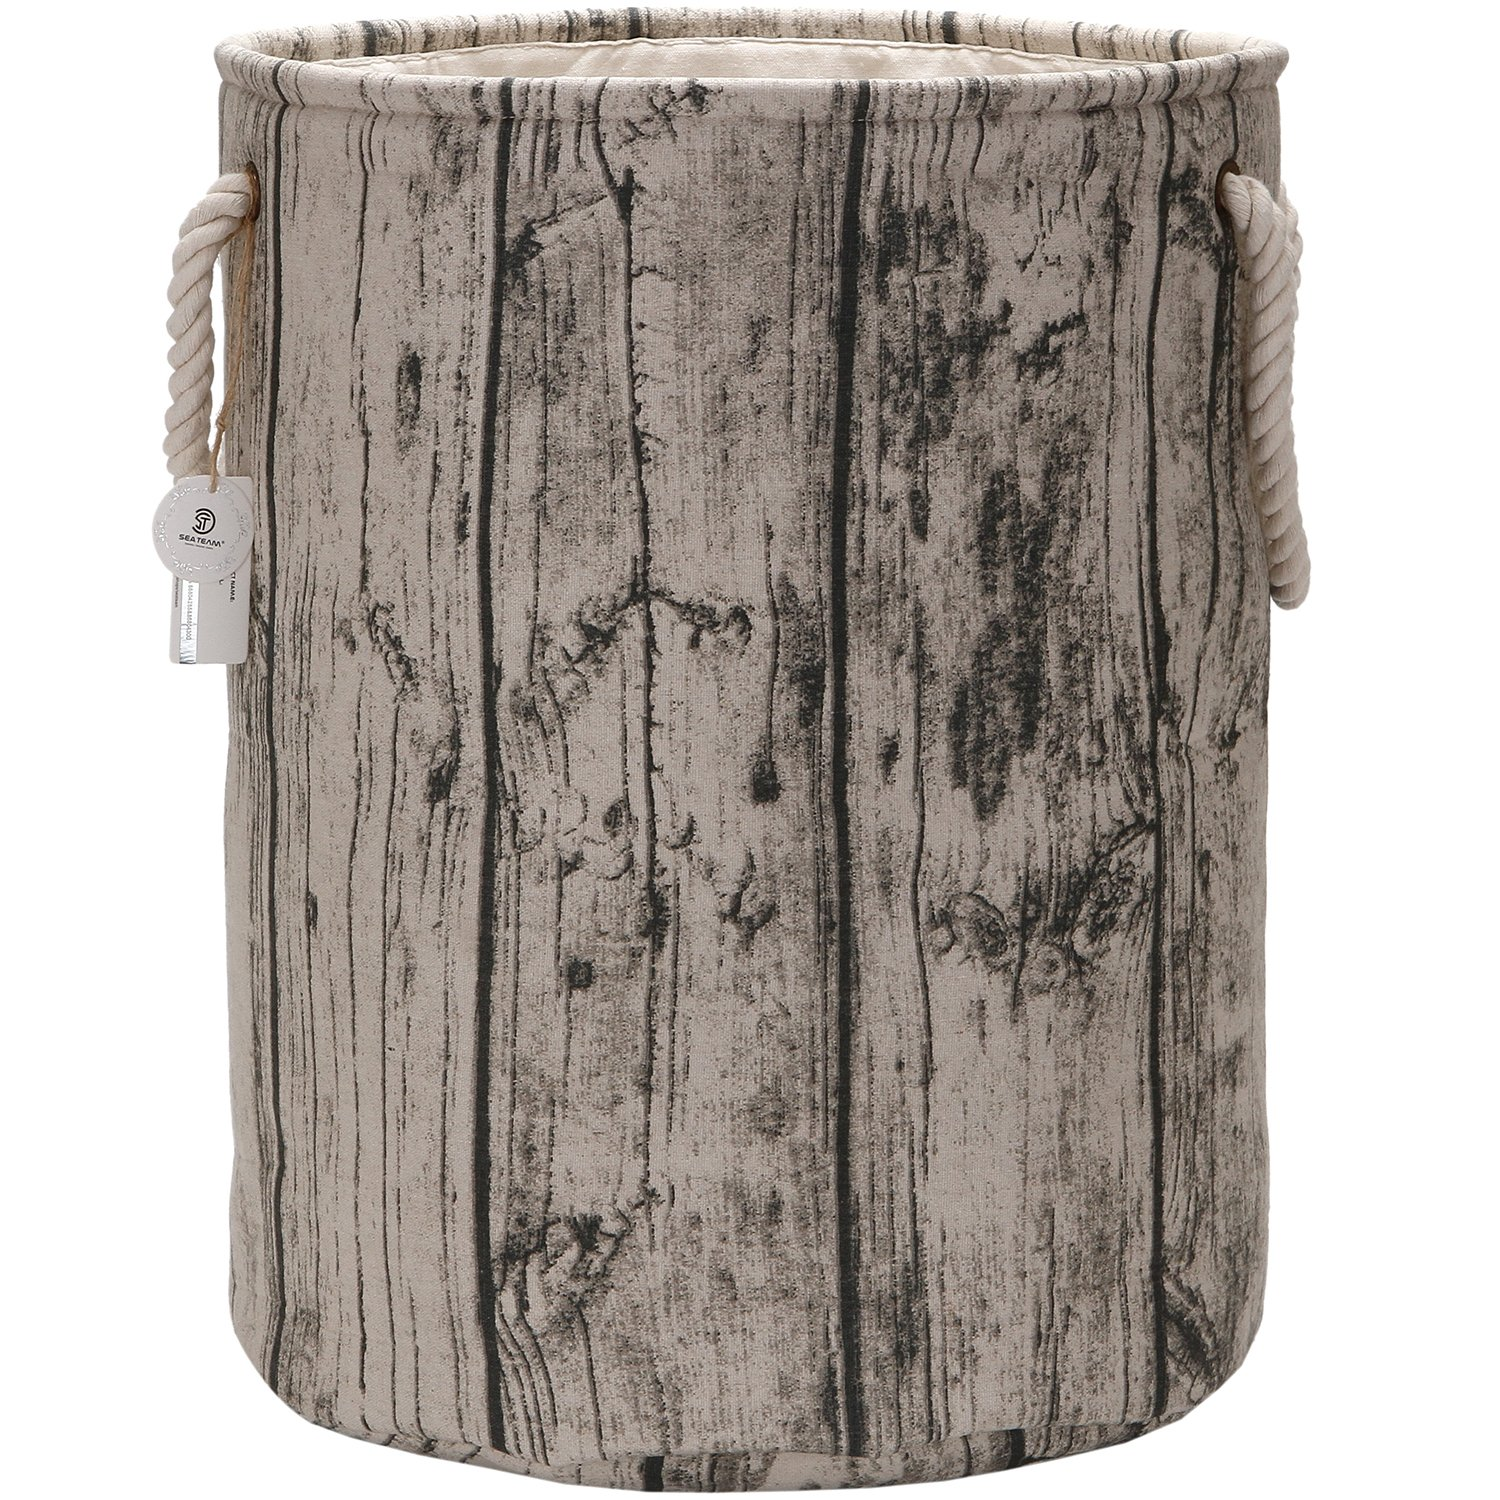 Sea Team 19.7 Large Size Stylish Tree Stump Wood Grain Canvas & Linen Fabric Laundry Hamper Storage Basket with Rope Handles, Walnut